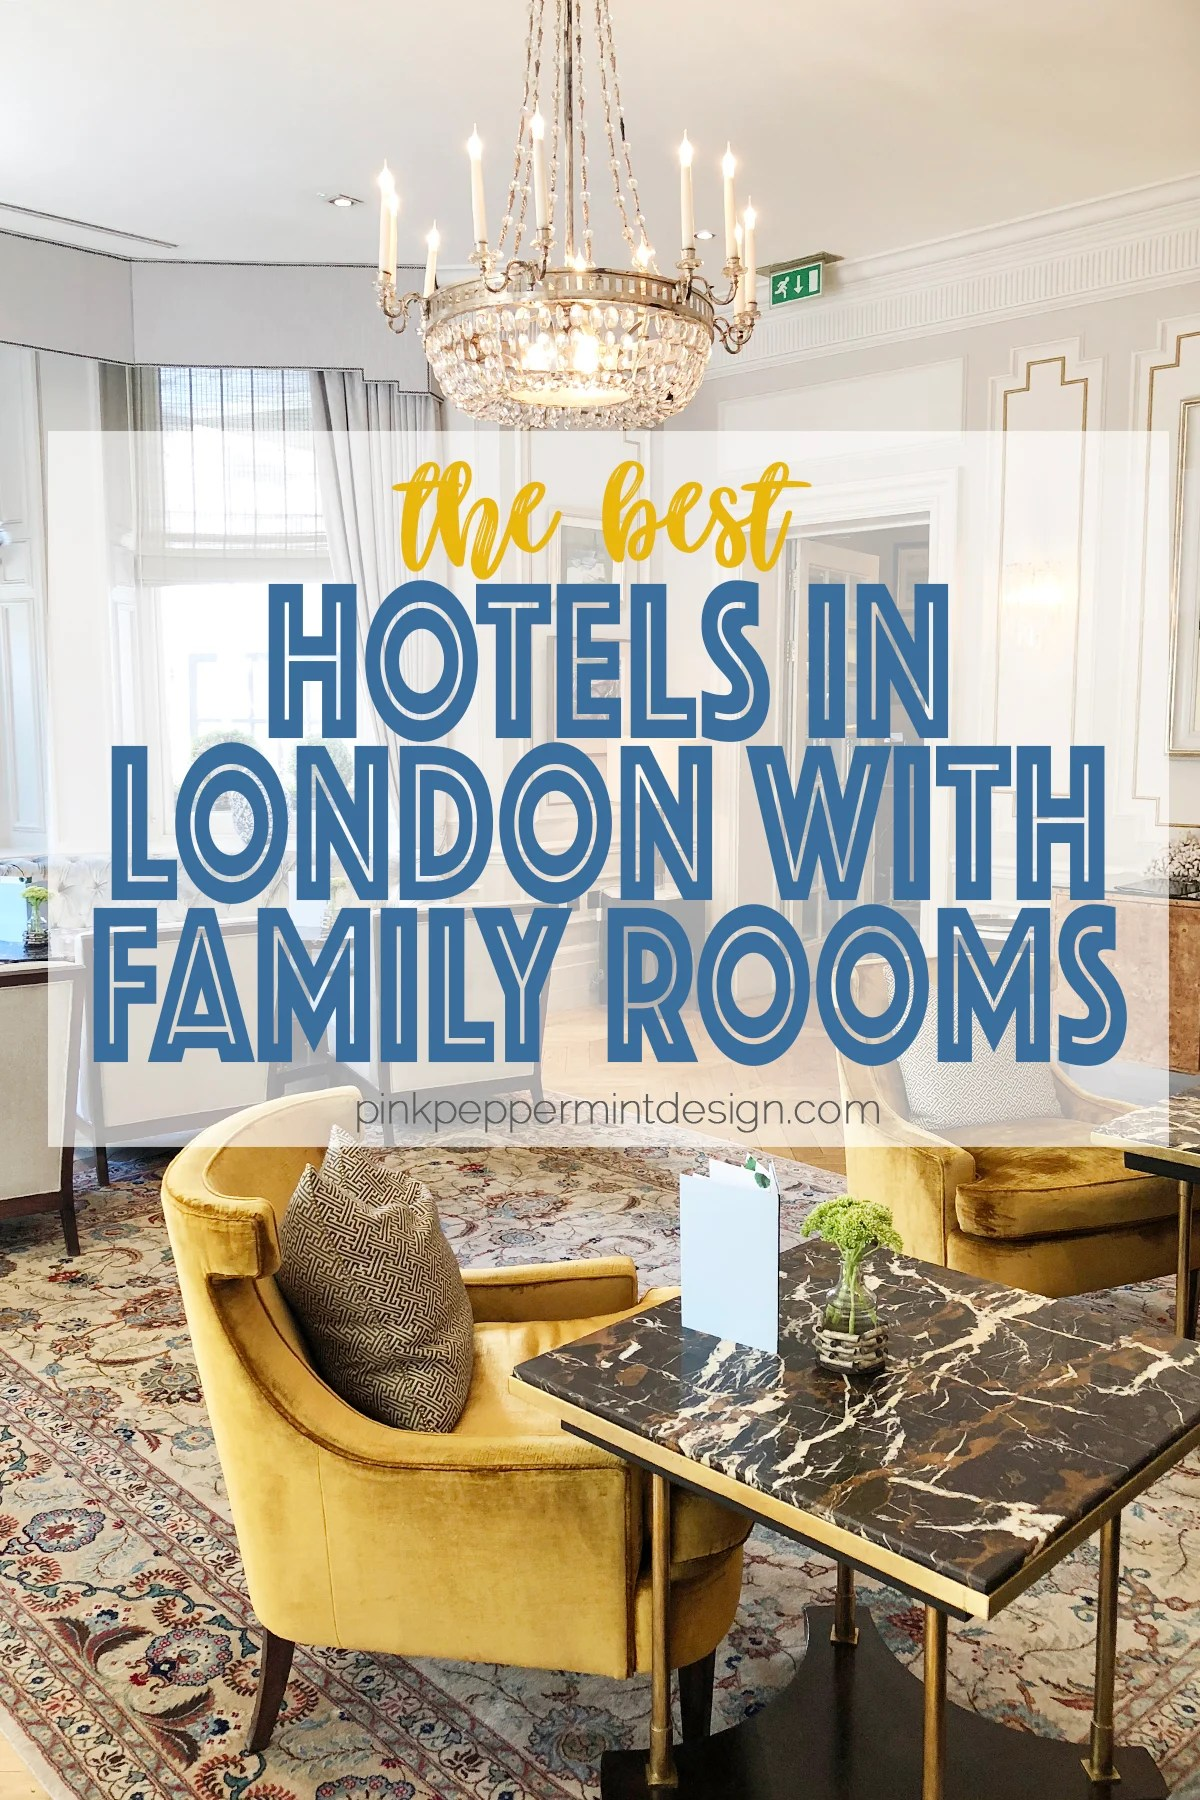 Hotels in London with Family Rooms : The Kensington Hotel London